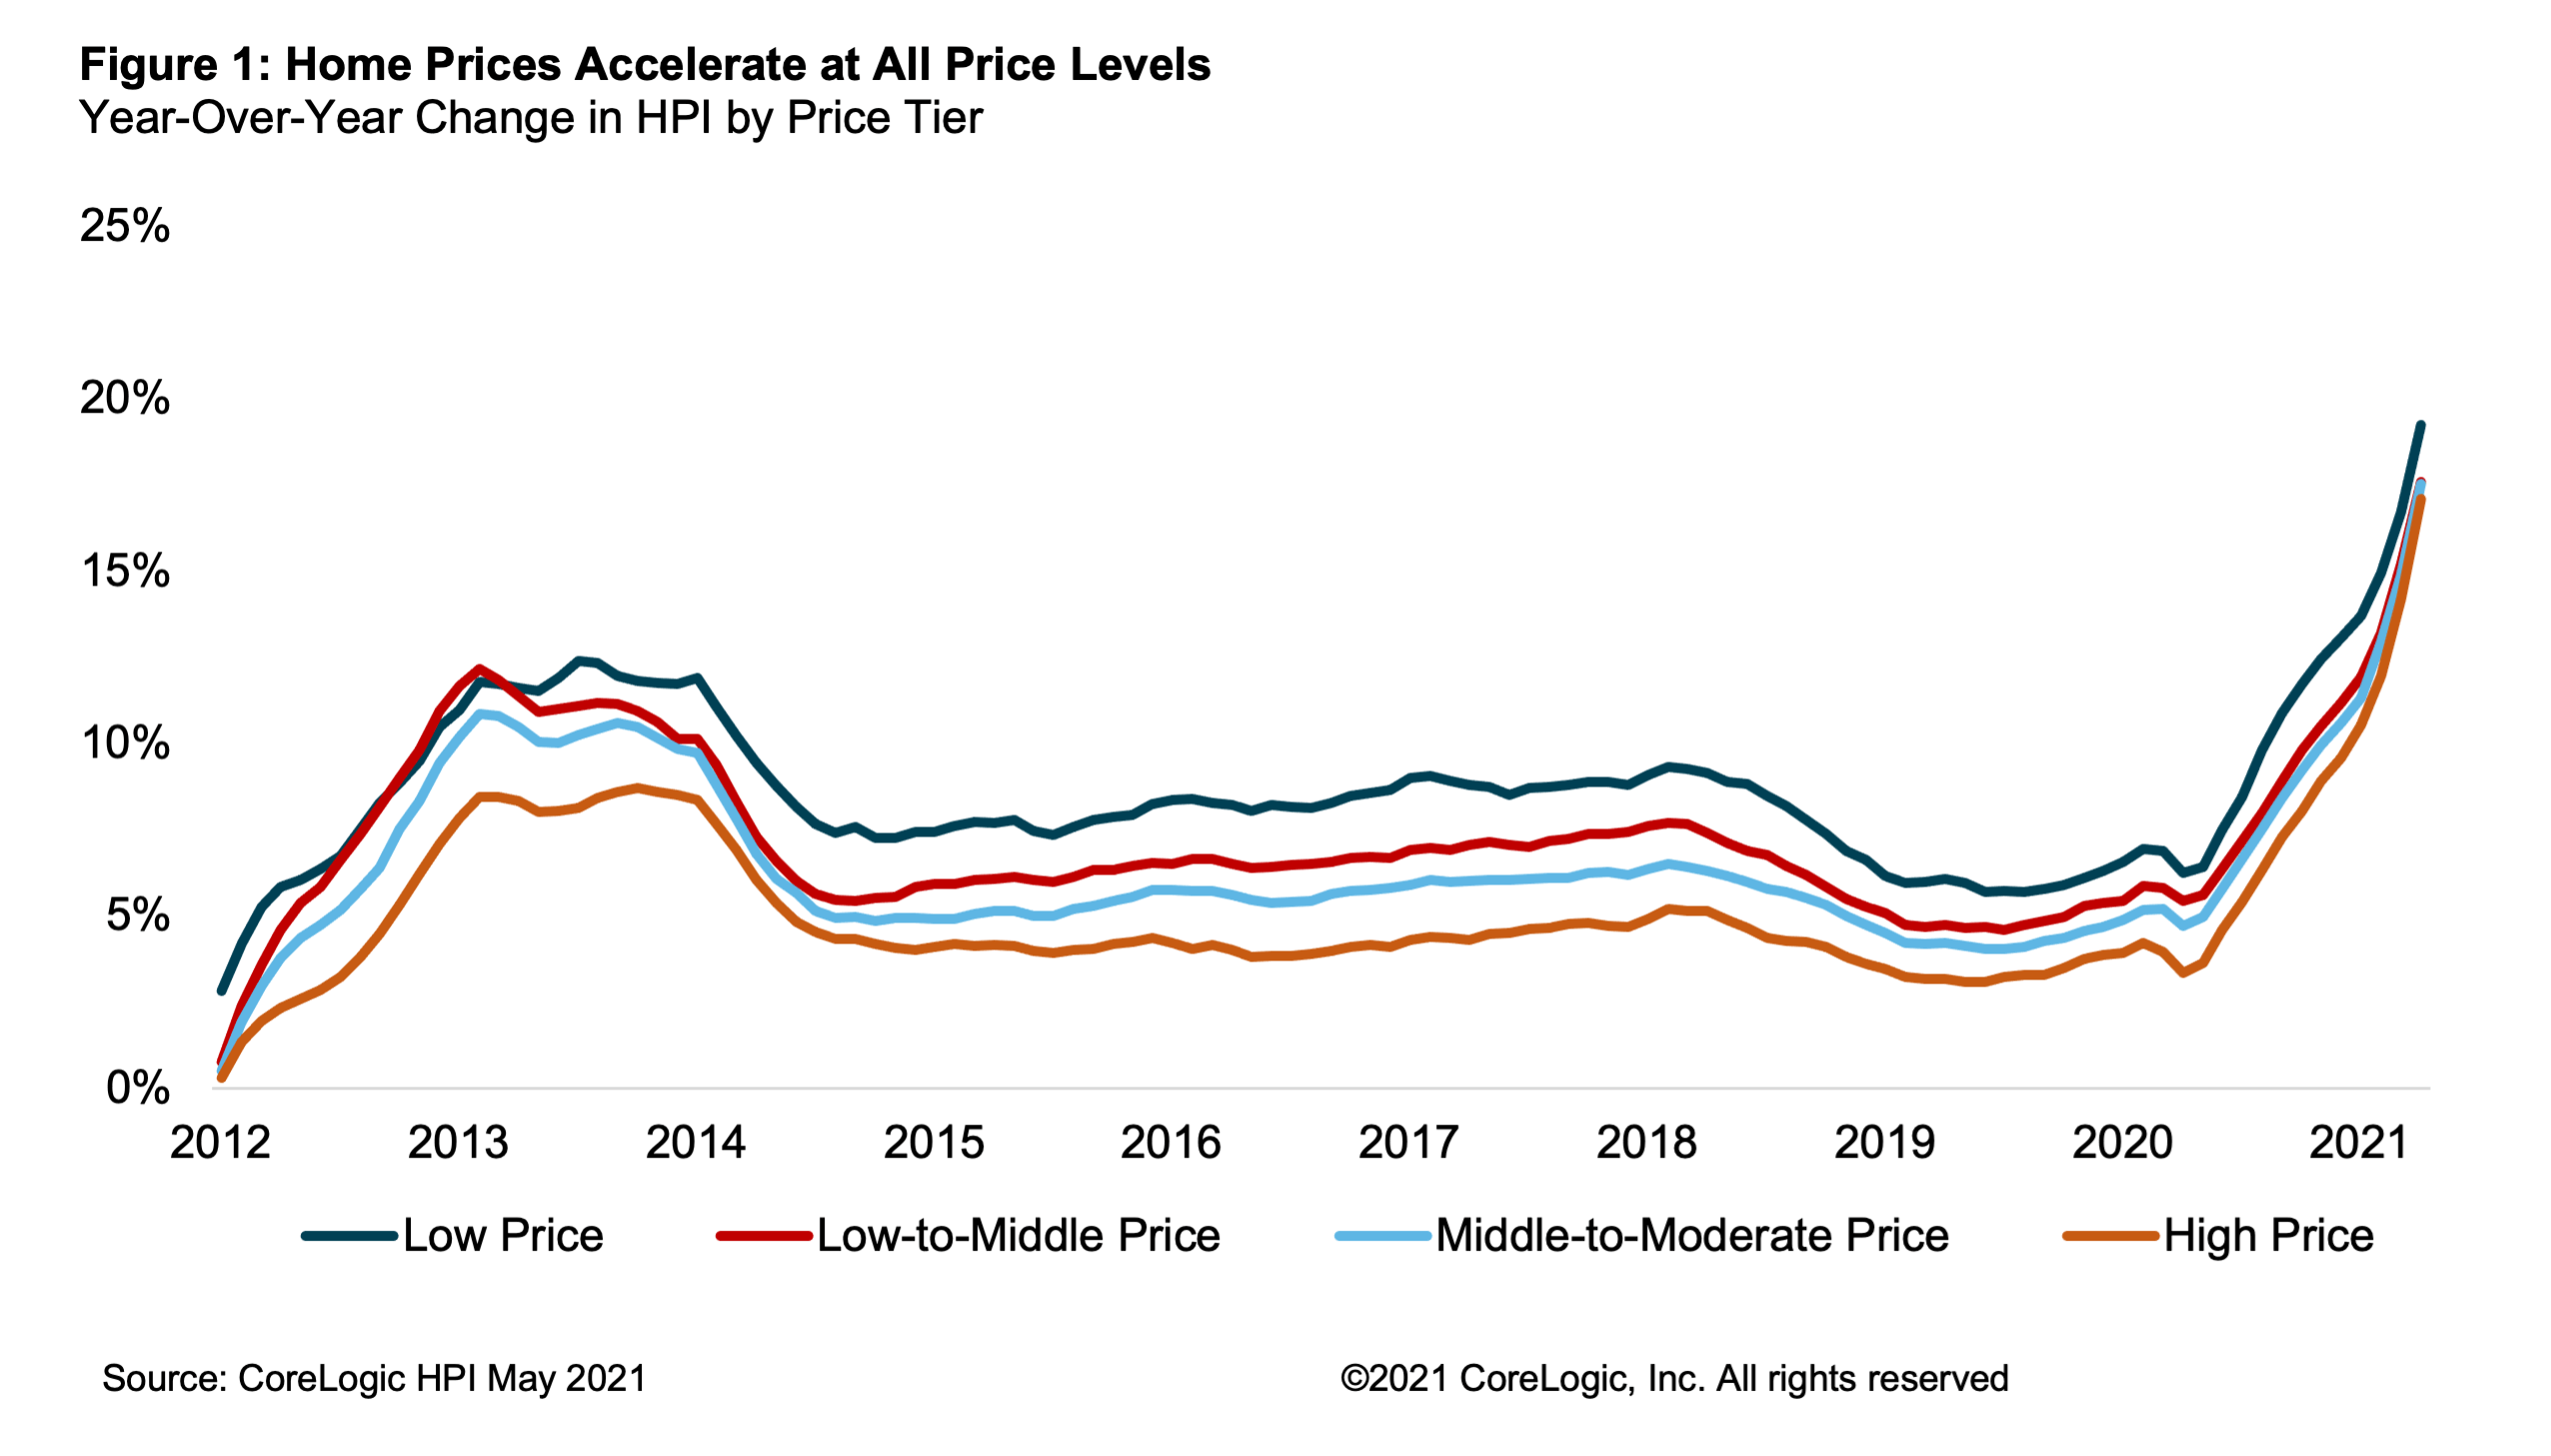 Figure 1: Home Prices Accelerate at All Price Levels. Year-over-year change in HPI by price tier